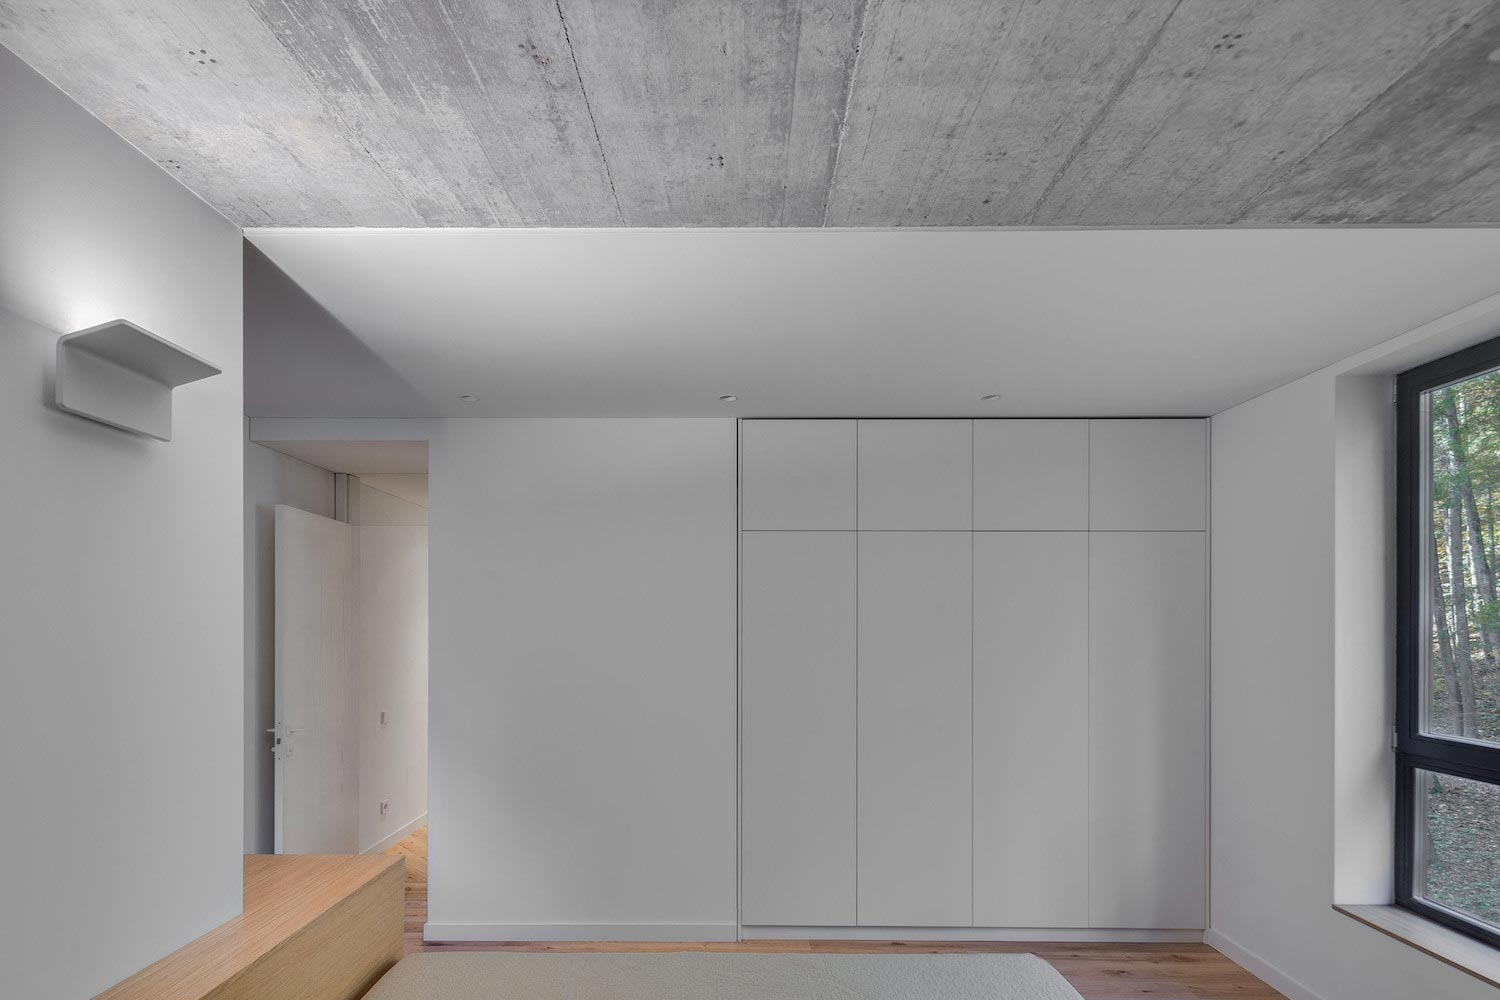 House recessed hidden behind continuous concrete wall ycl studio 06